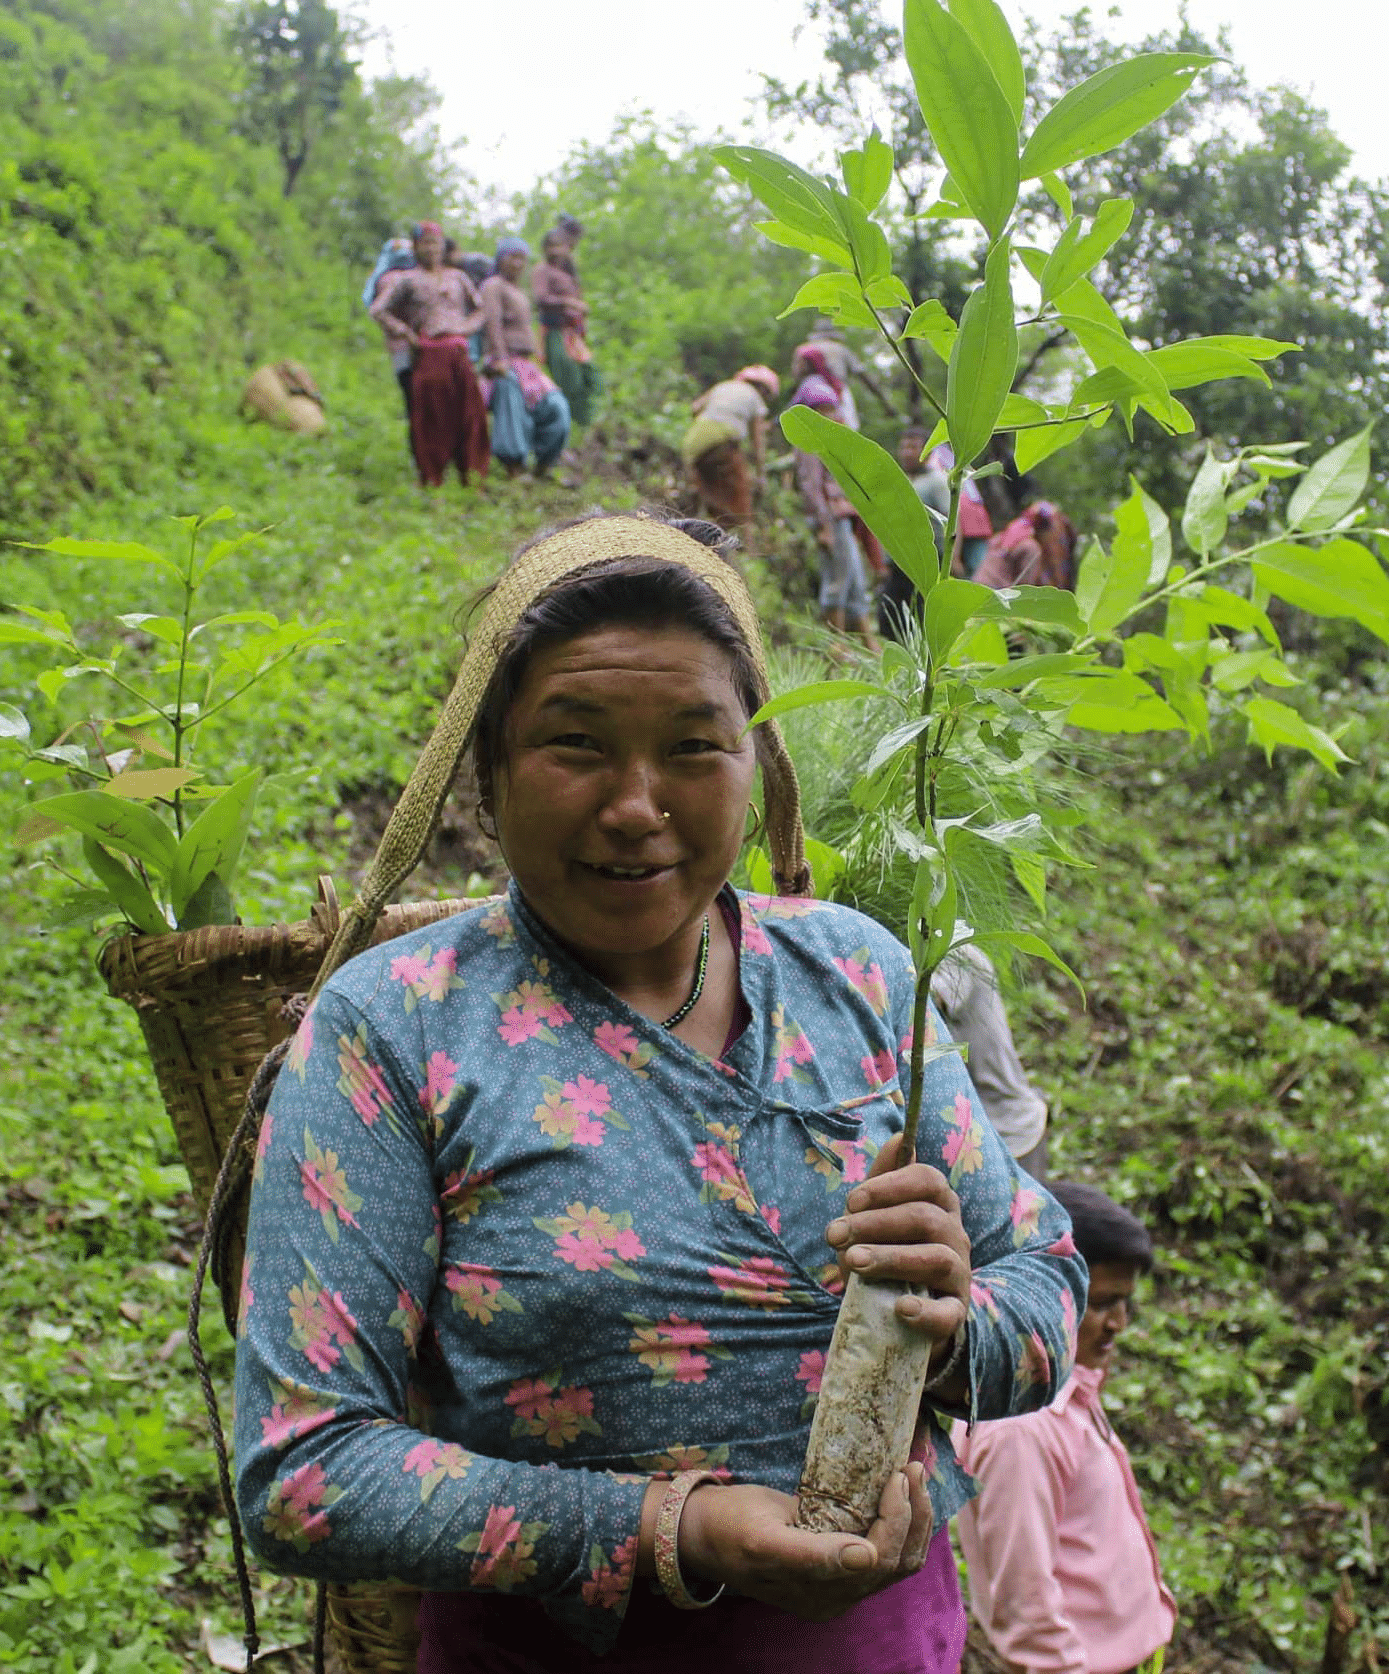 Eden Reforestation Project - lady planting trees